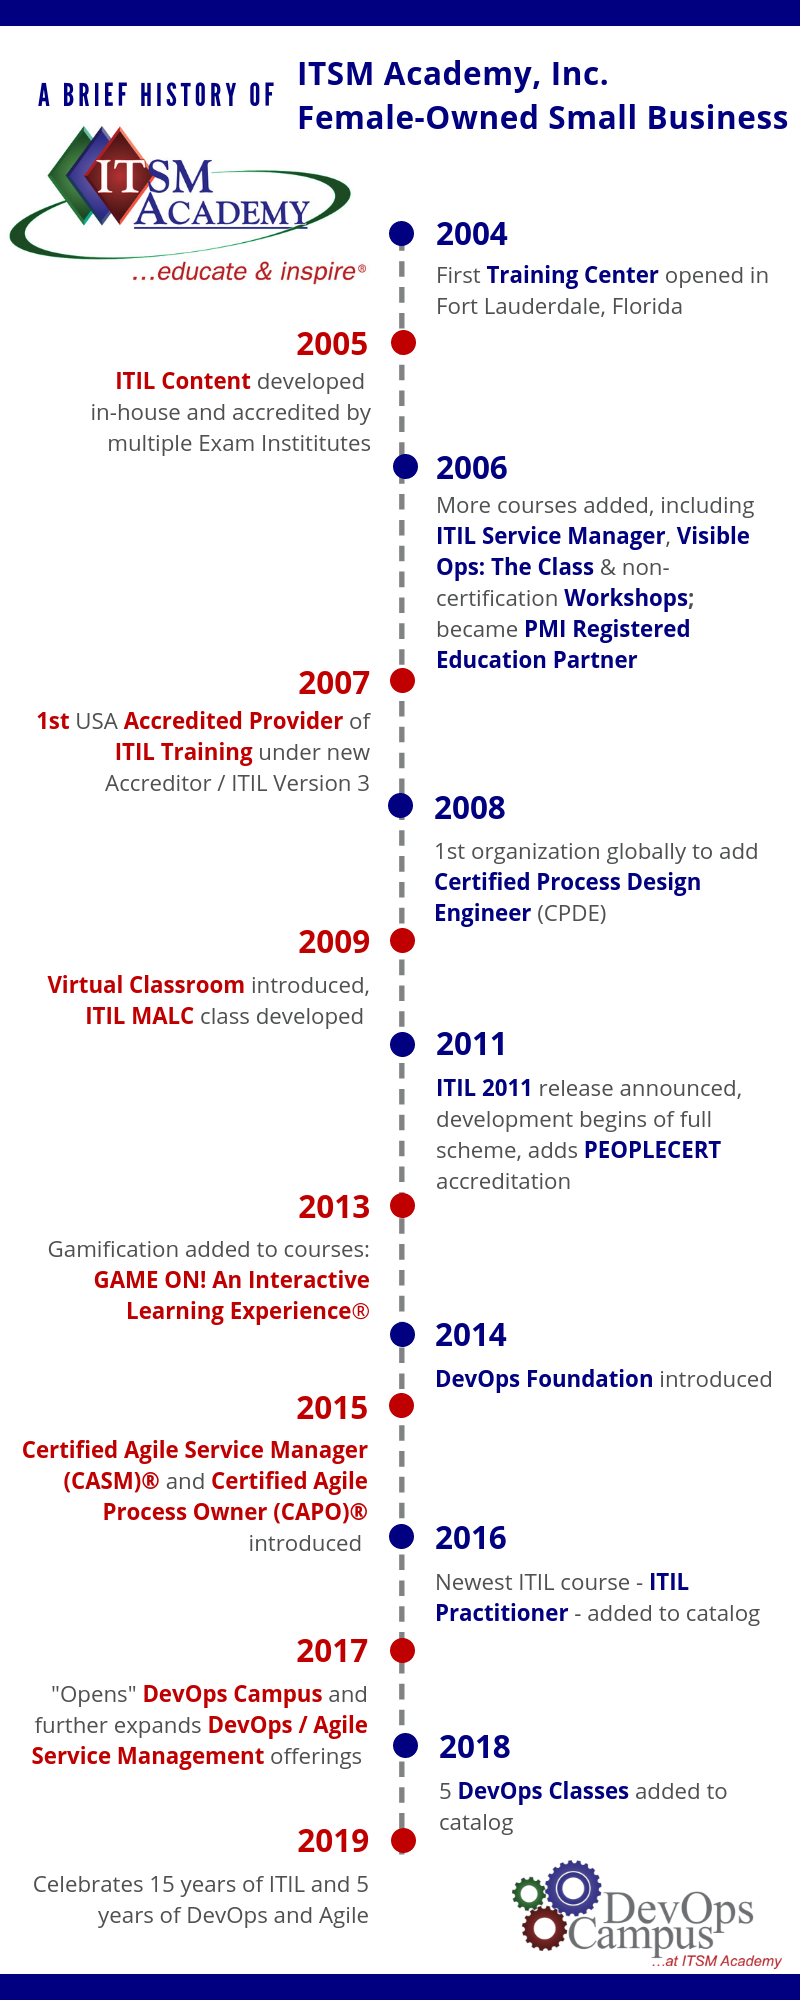 Management team timeline itsm academy timeline click here to expand xflitez Choice Image